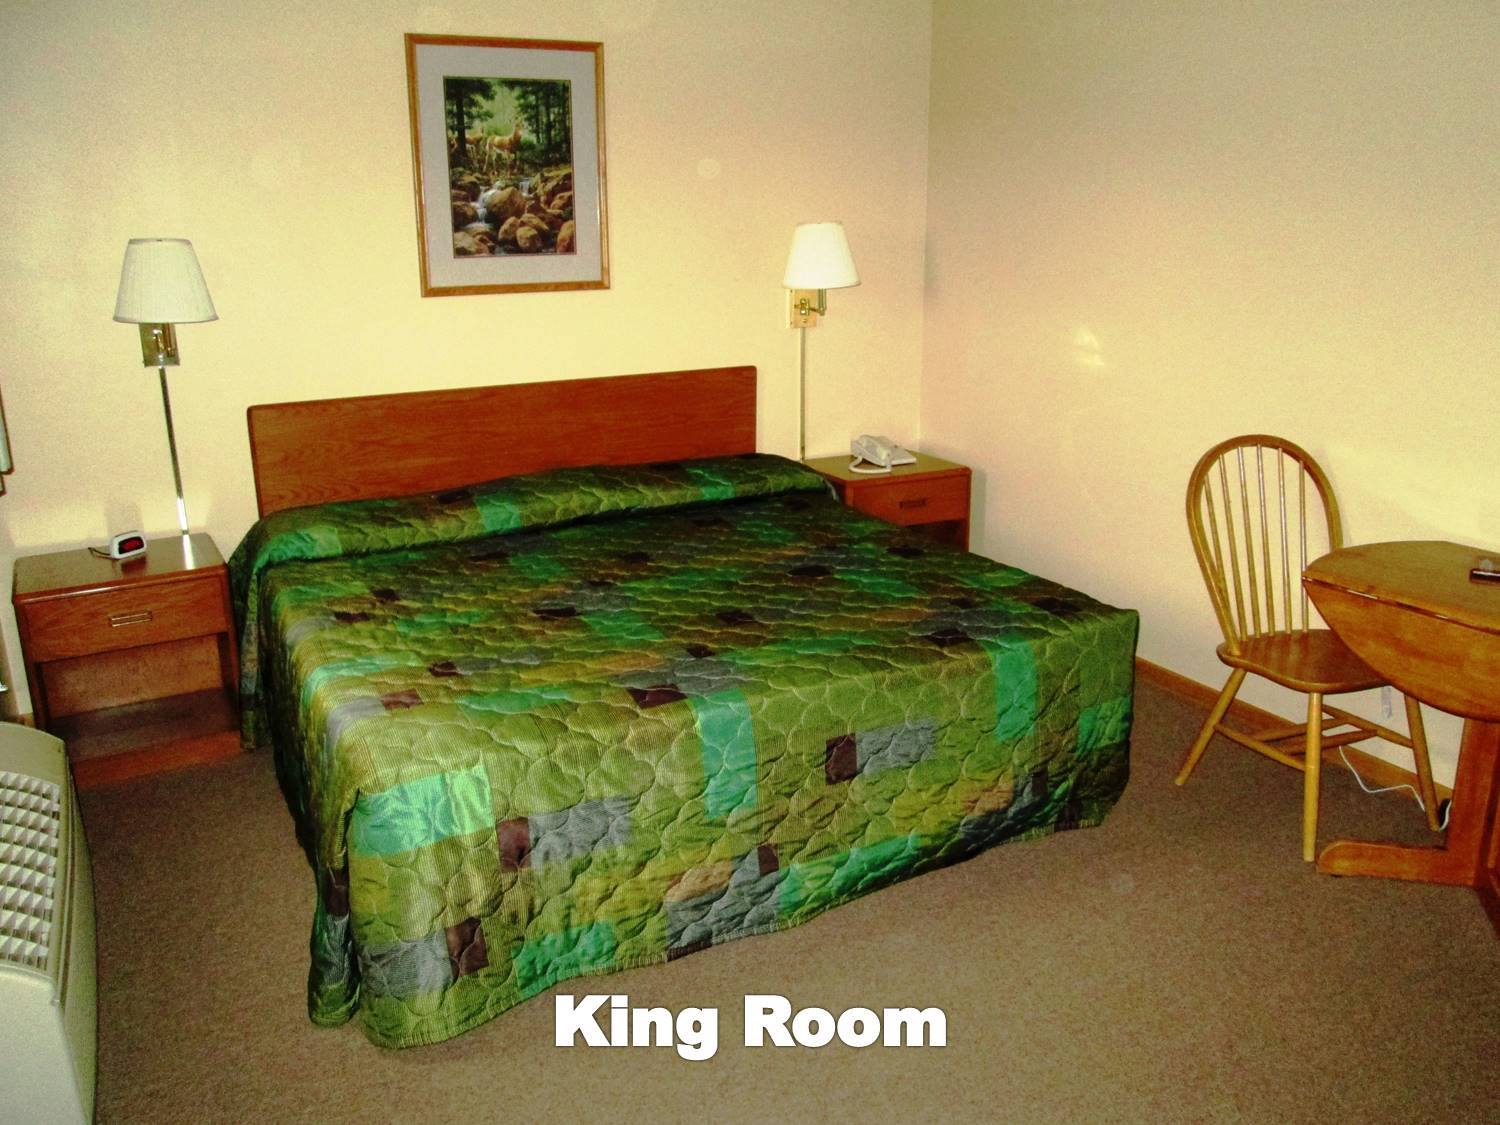 Room with one king bed and appropriate furnishings.